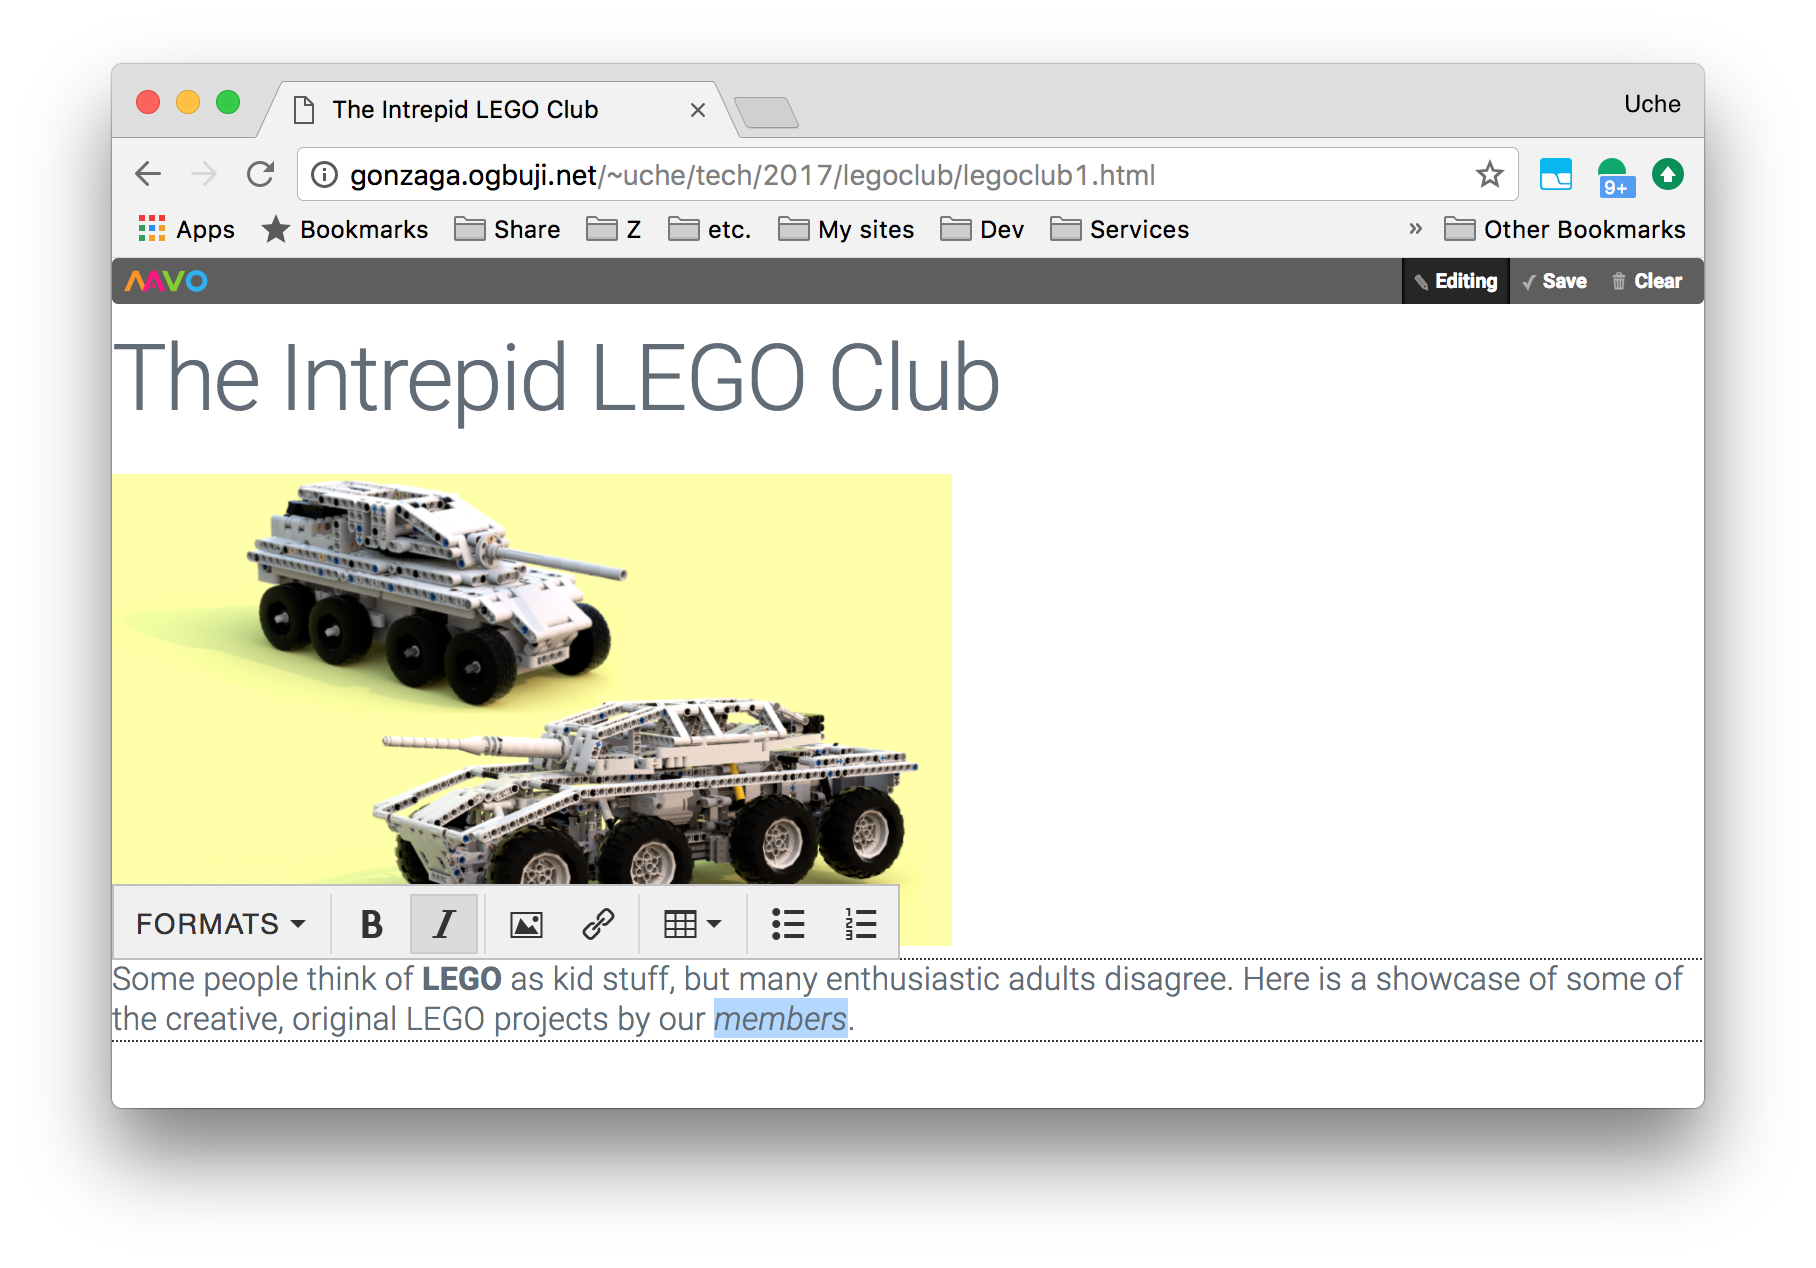 User editing summary paragraph of LEGO club page